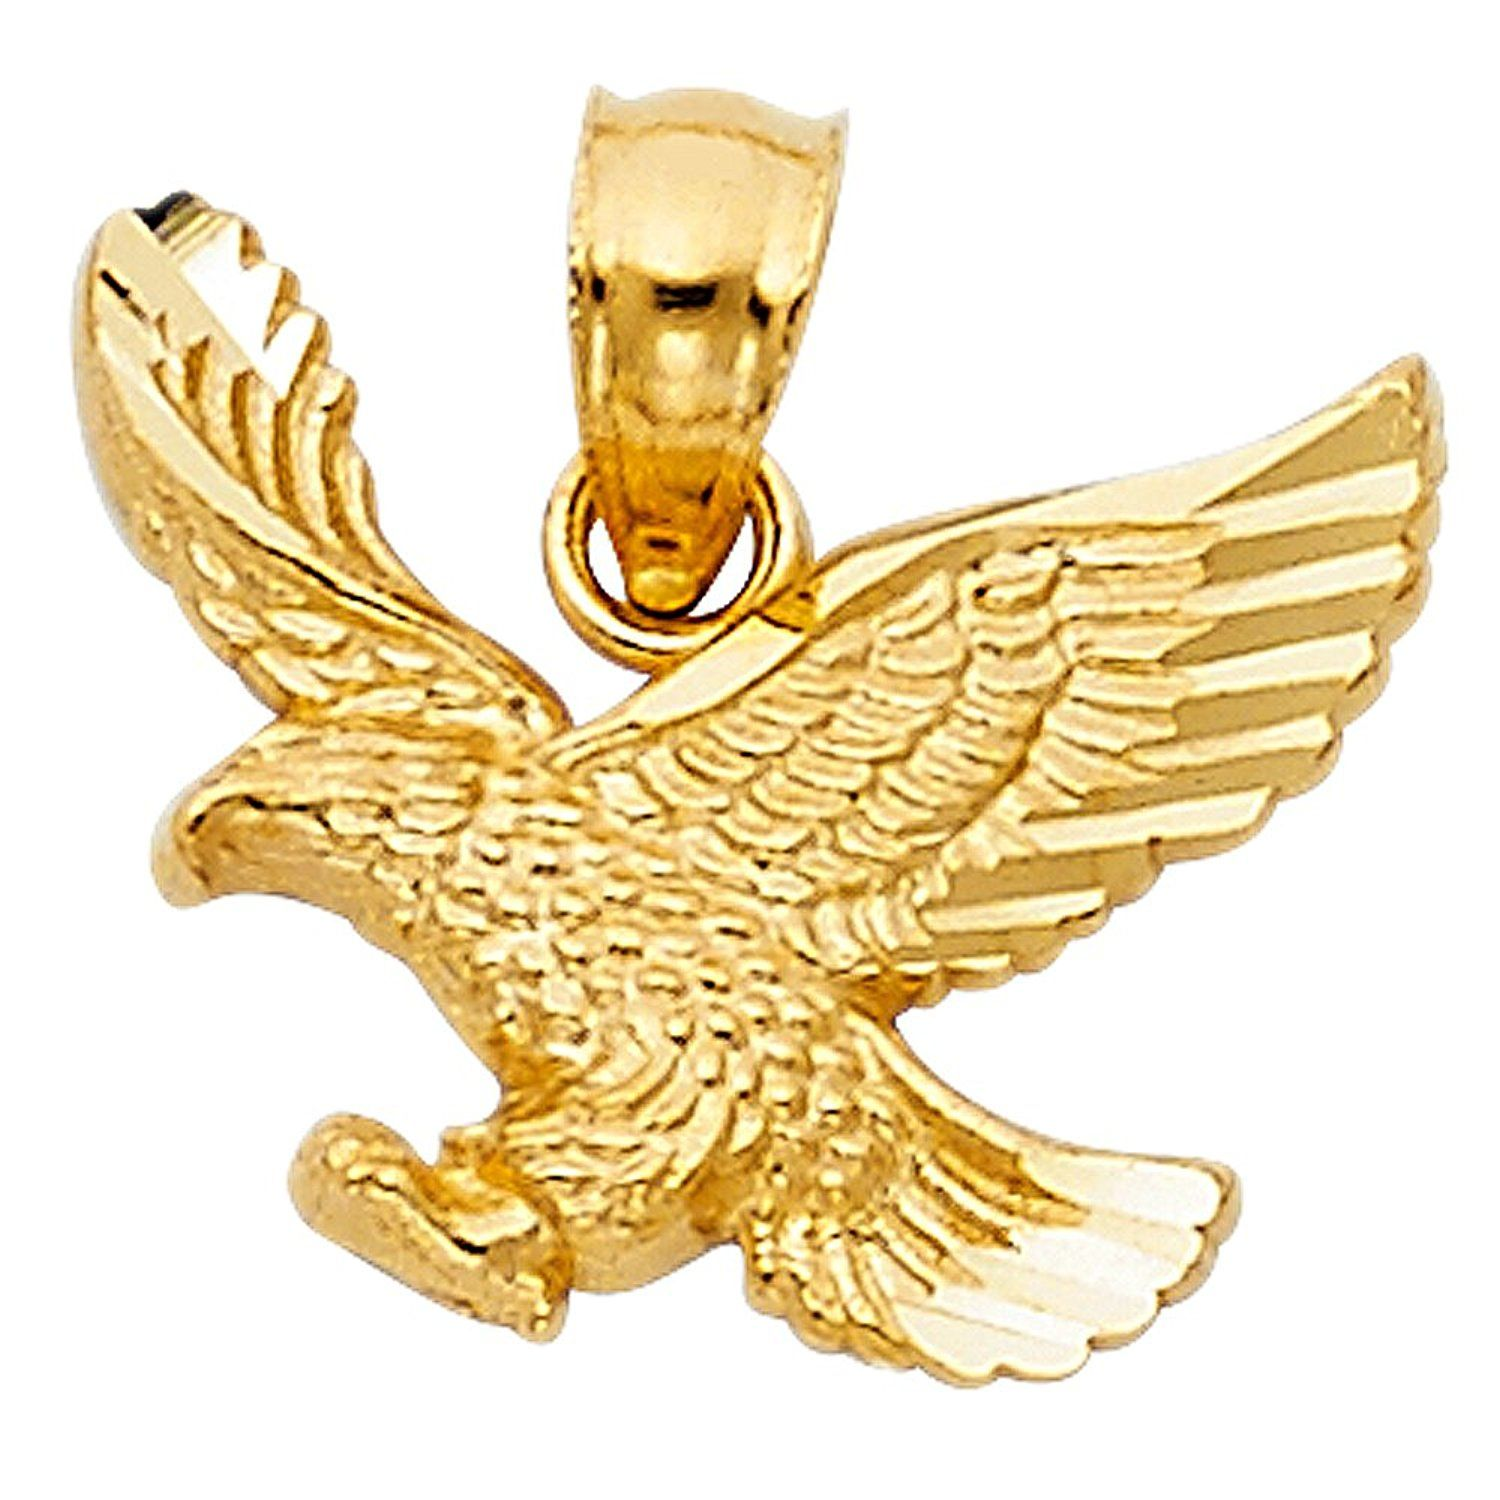 gold jewelry mens watches diamond eagle silver accent overstock free shipping product today s palmbeach pendant over men